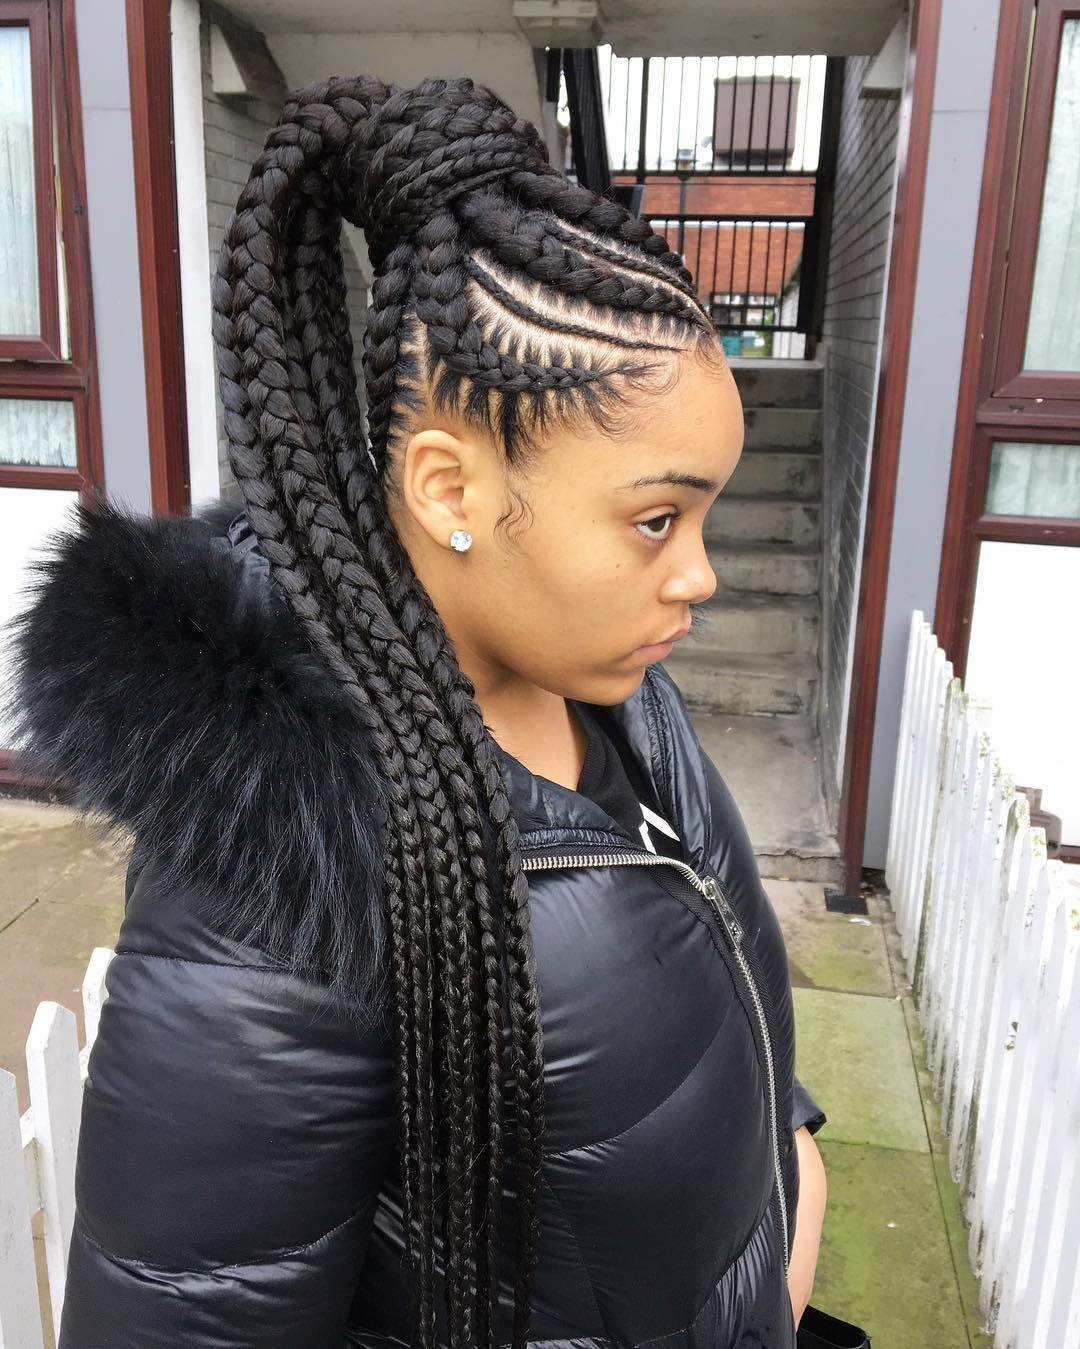 pin by modern hairstylers on box braids hairstyles | hair